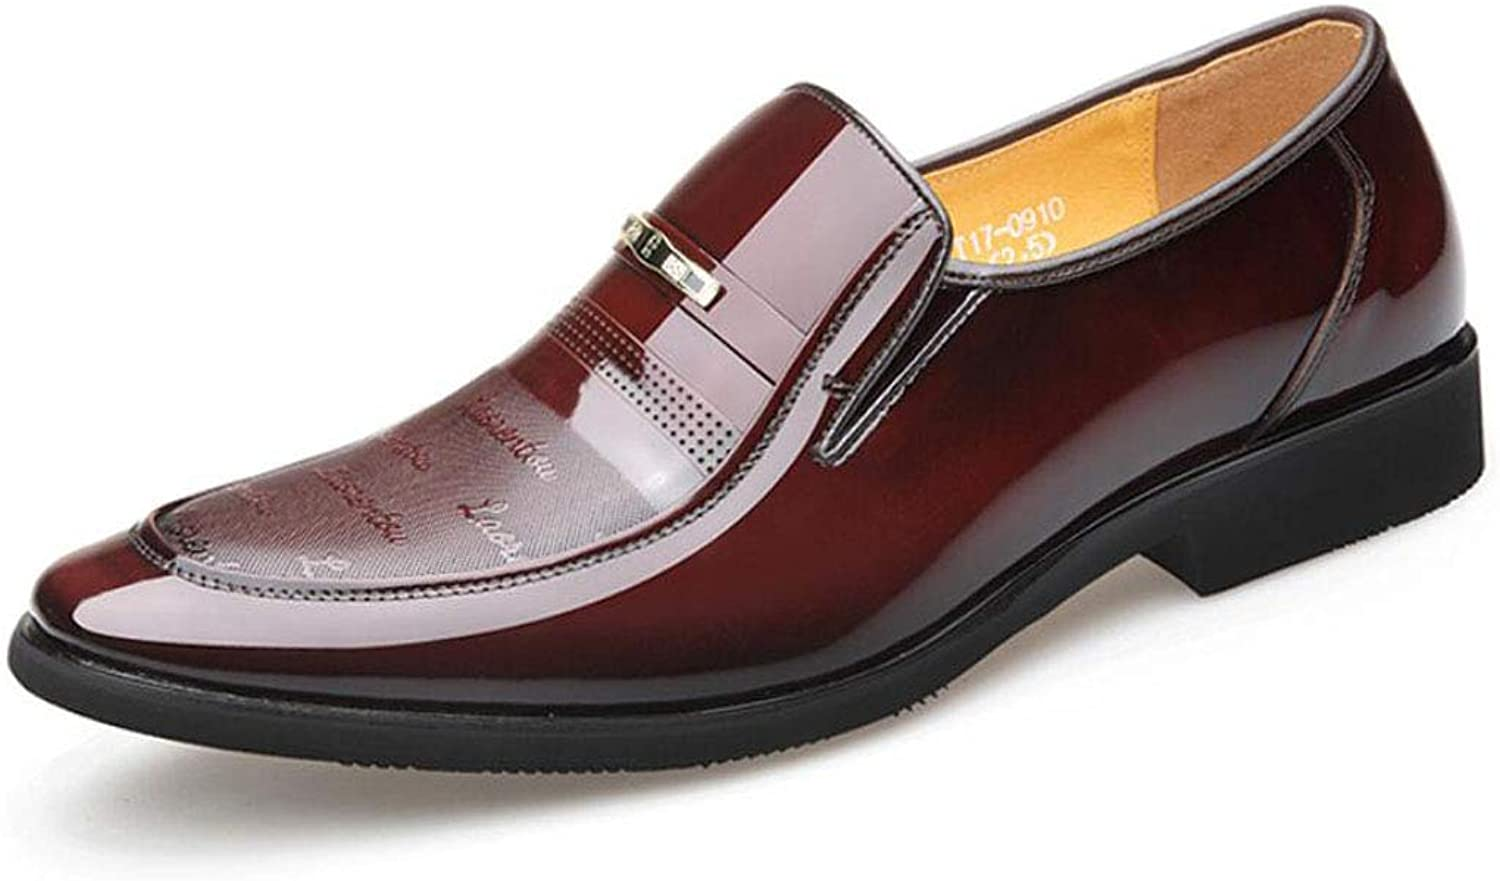 Lok Fu shoes Pointed Patent Leather Feet shoes Comfortable shoes Leather Business Dress shoes